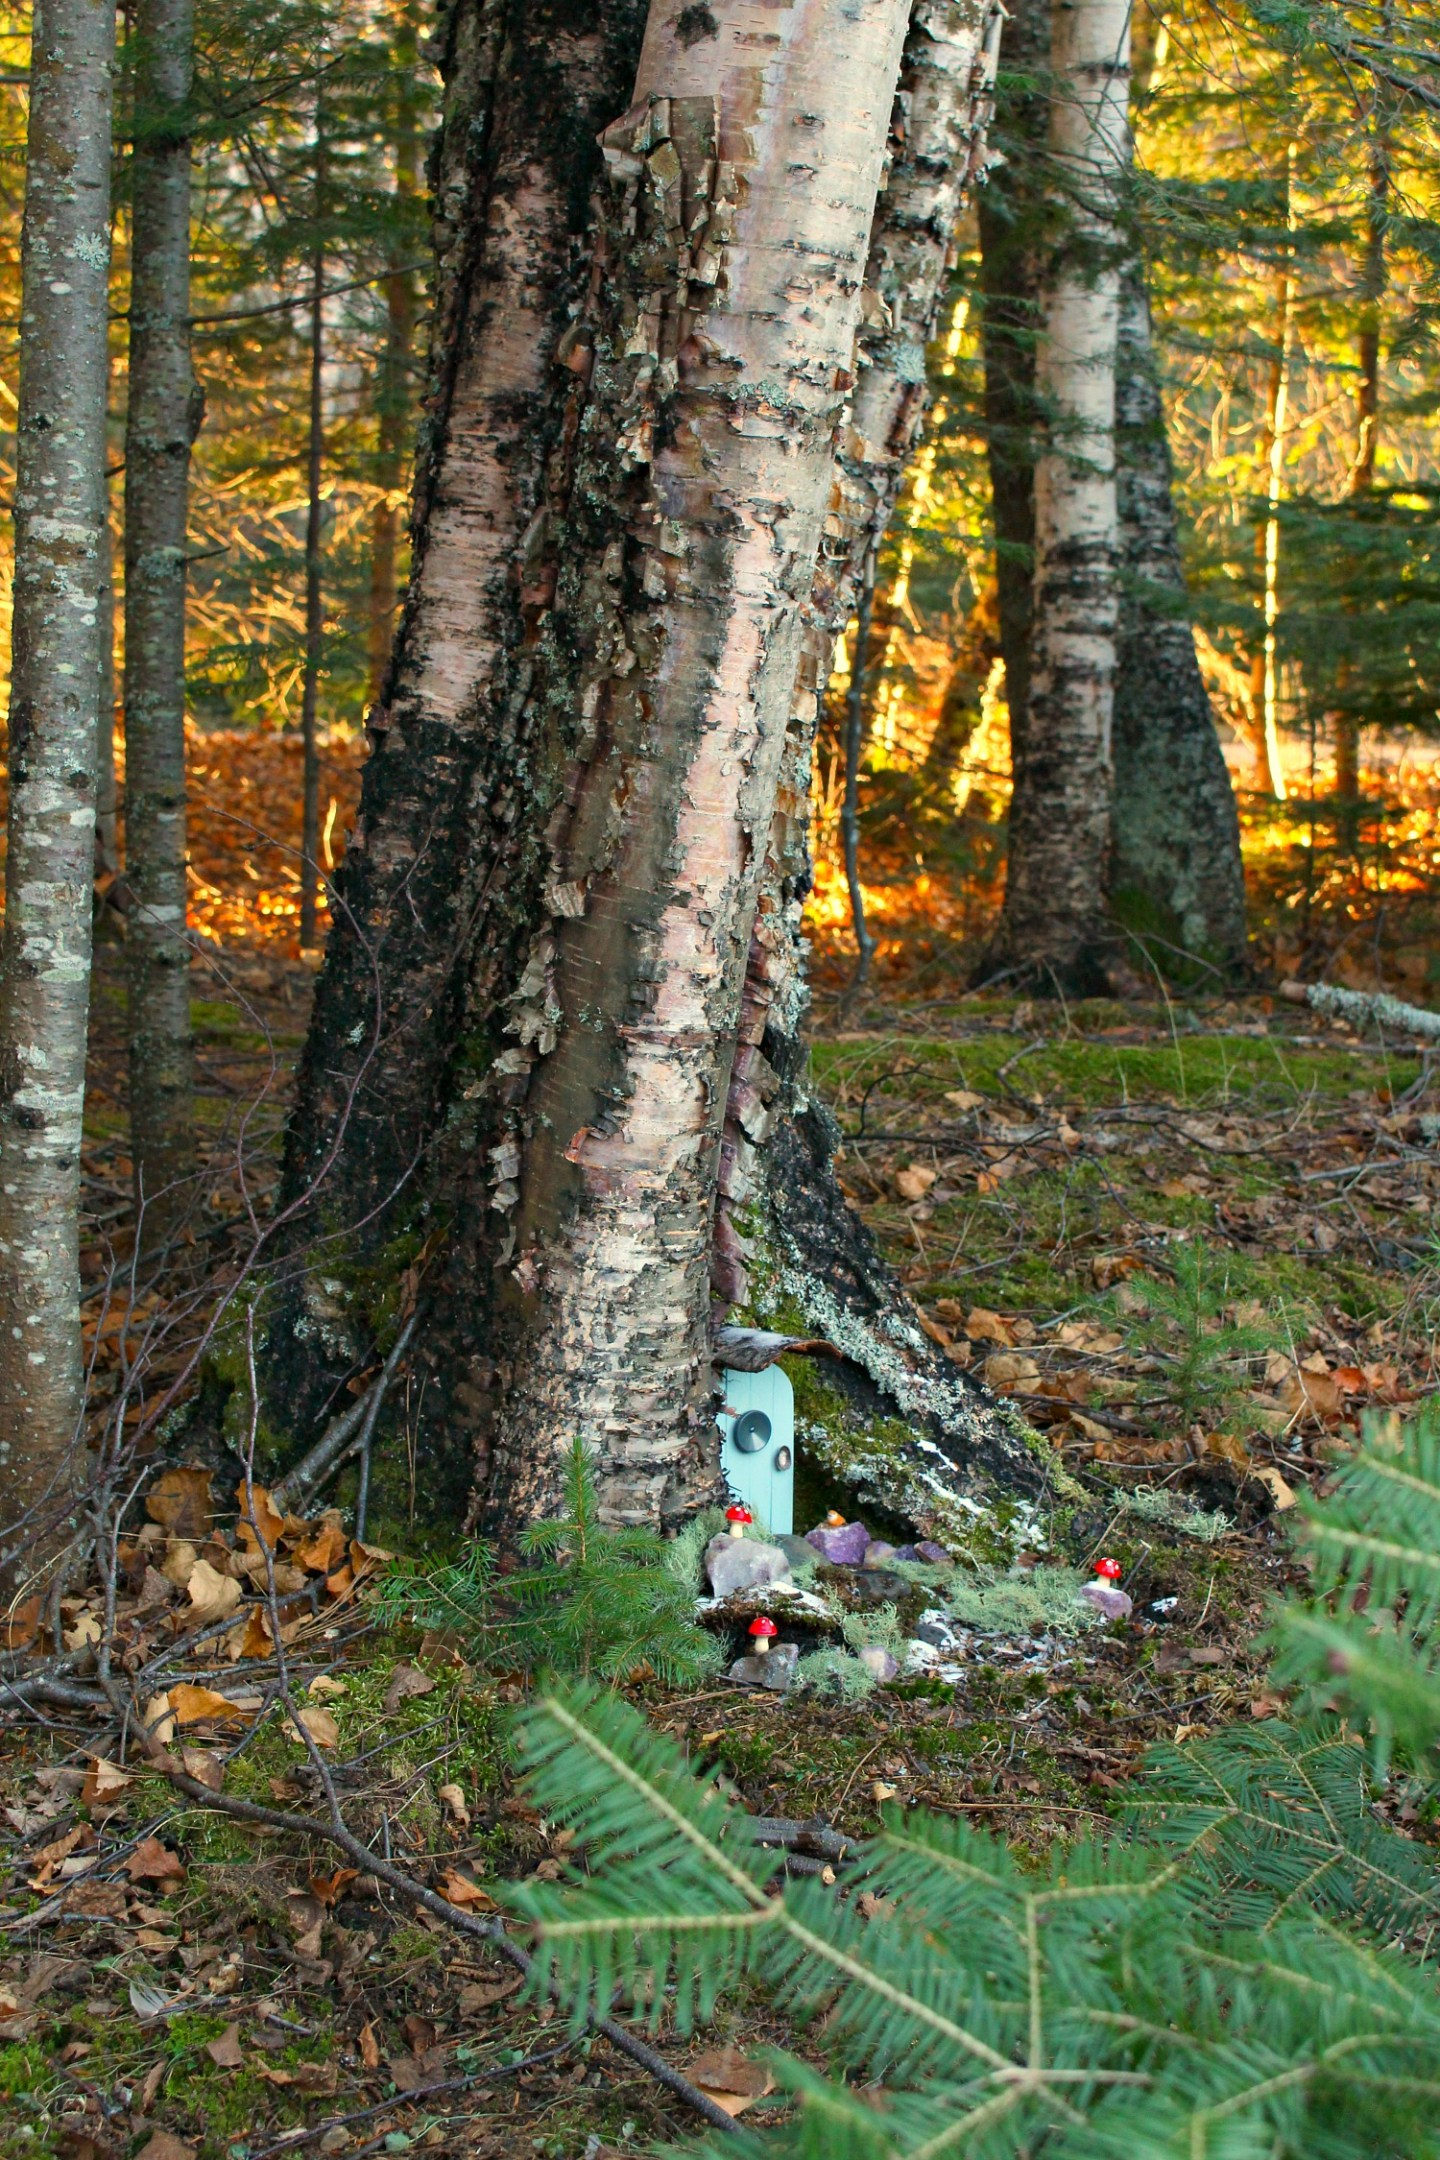 How to Make an Elf House in a Tree